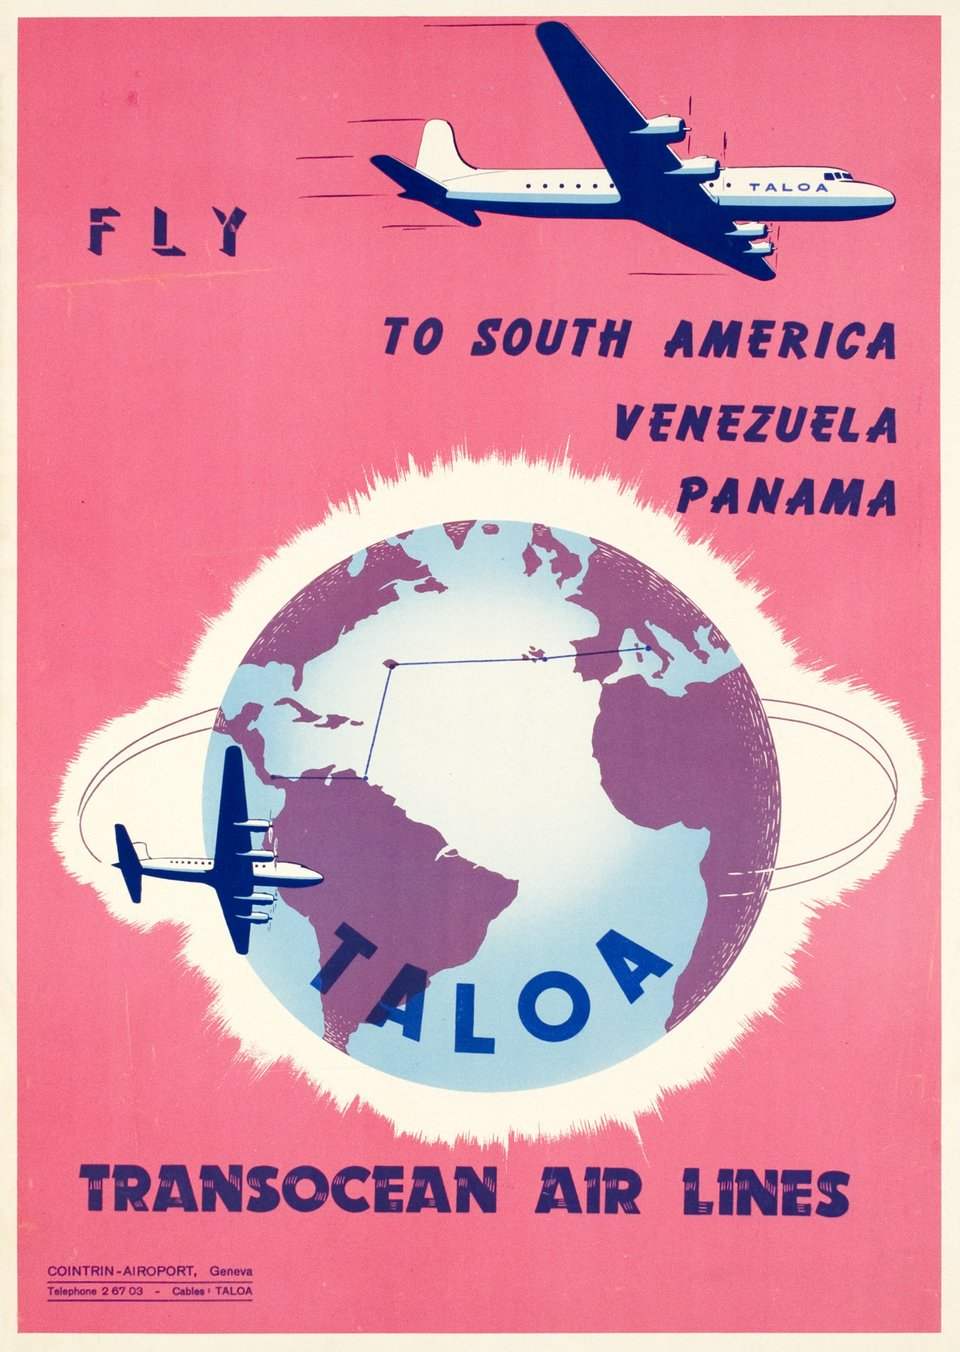 TALOA, Transocean Air Lines, fly to South America, Venezuela, Panama – Affiche ancienne –  ANONYME – 1948